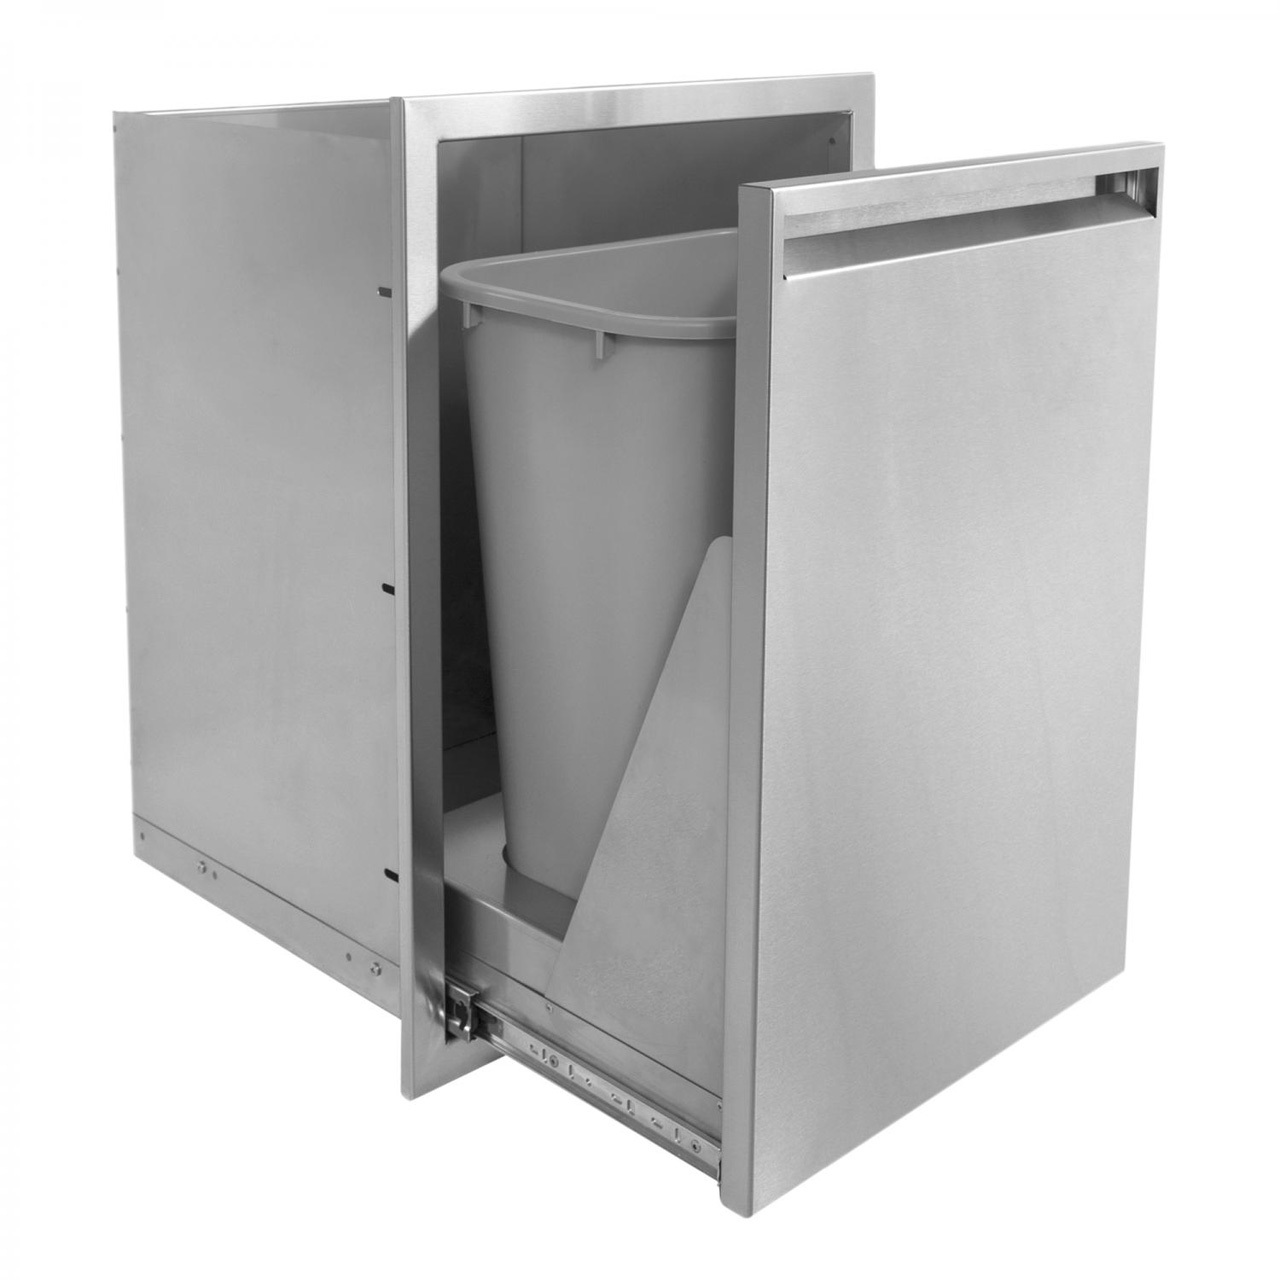 BBQ Island 350 Series - 17x24 Roll-Out Double Trash/Recycling Bin